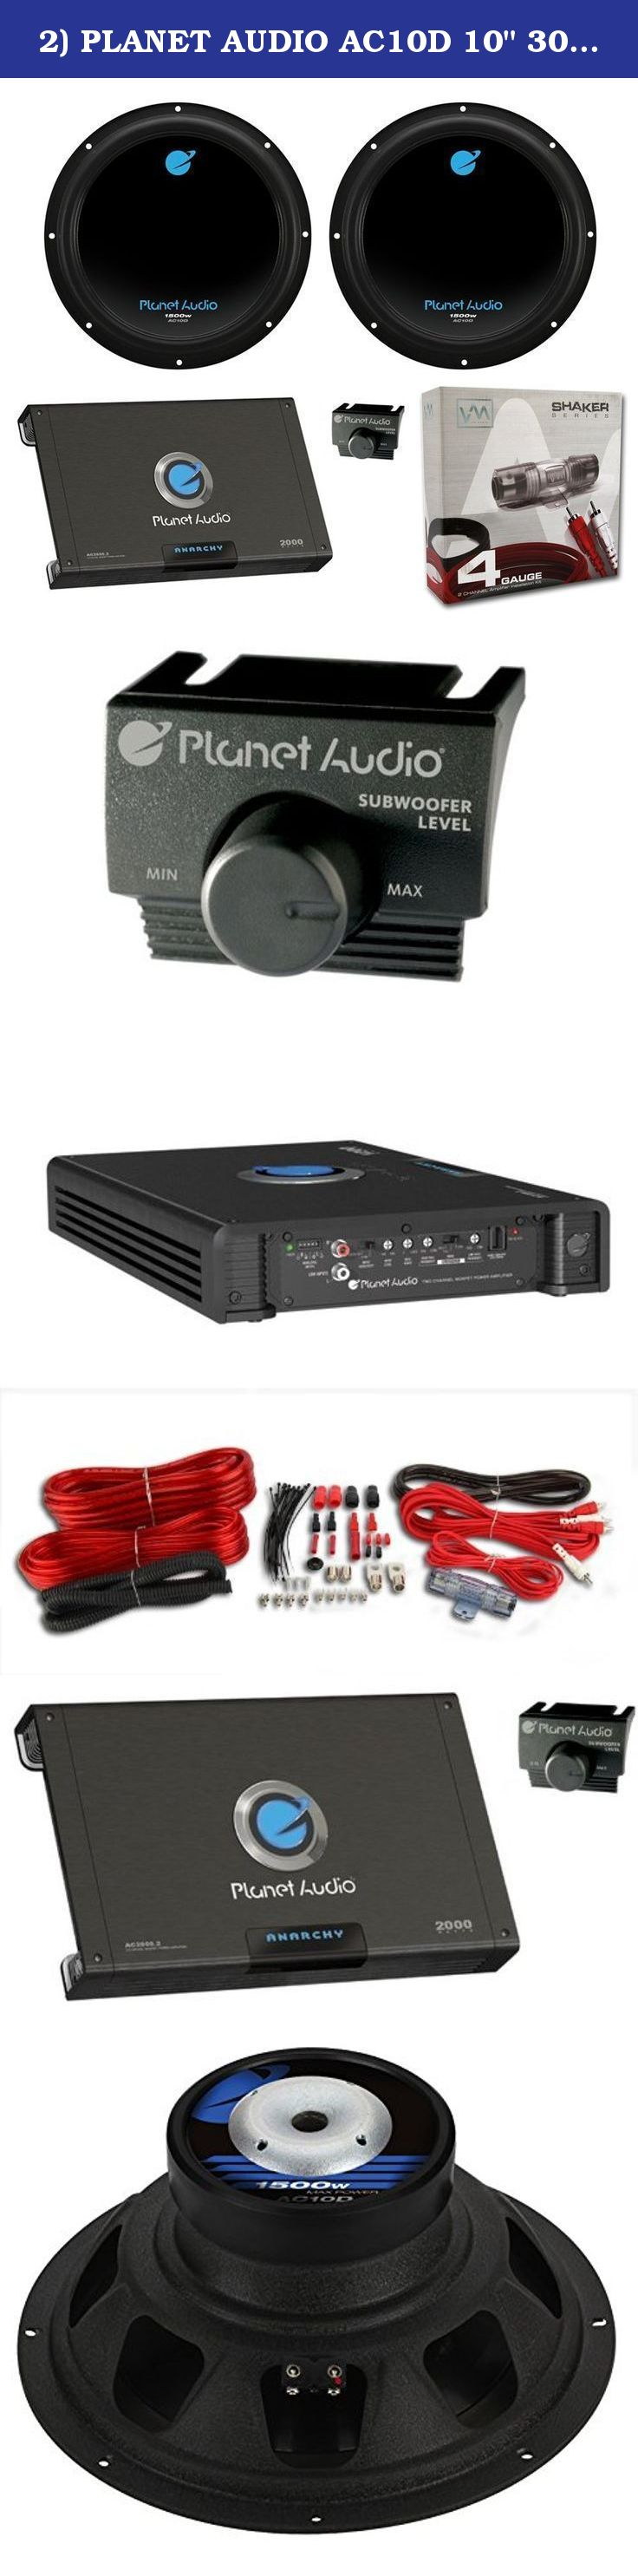 2 Planet Audio Ac10d 10 3000w Car Subwoofers Subs Channel Gauge 2channel Complete Amplifier Kit Vehicle Wire Amp